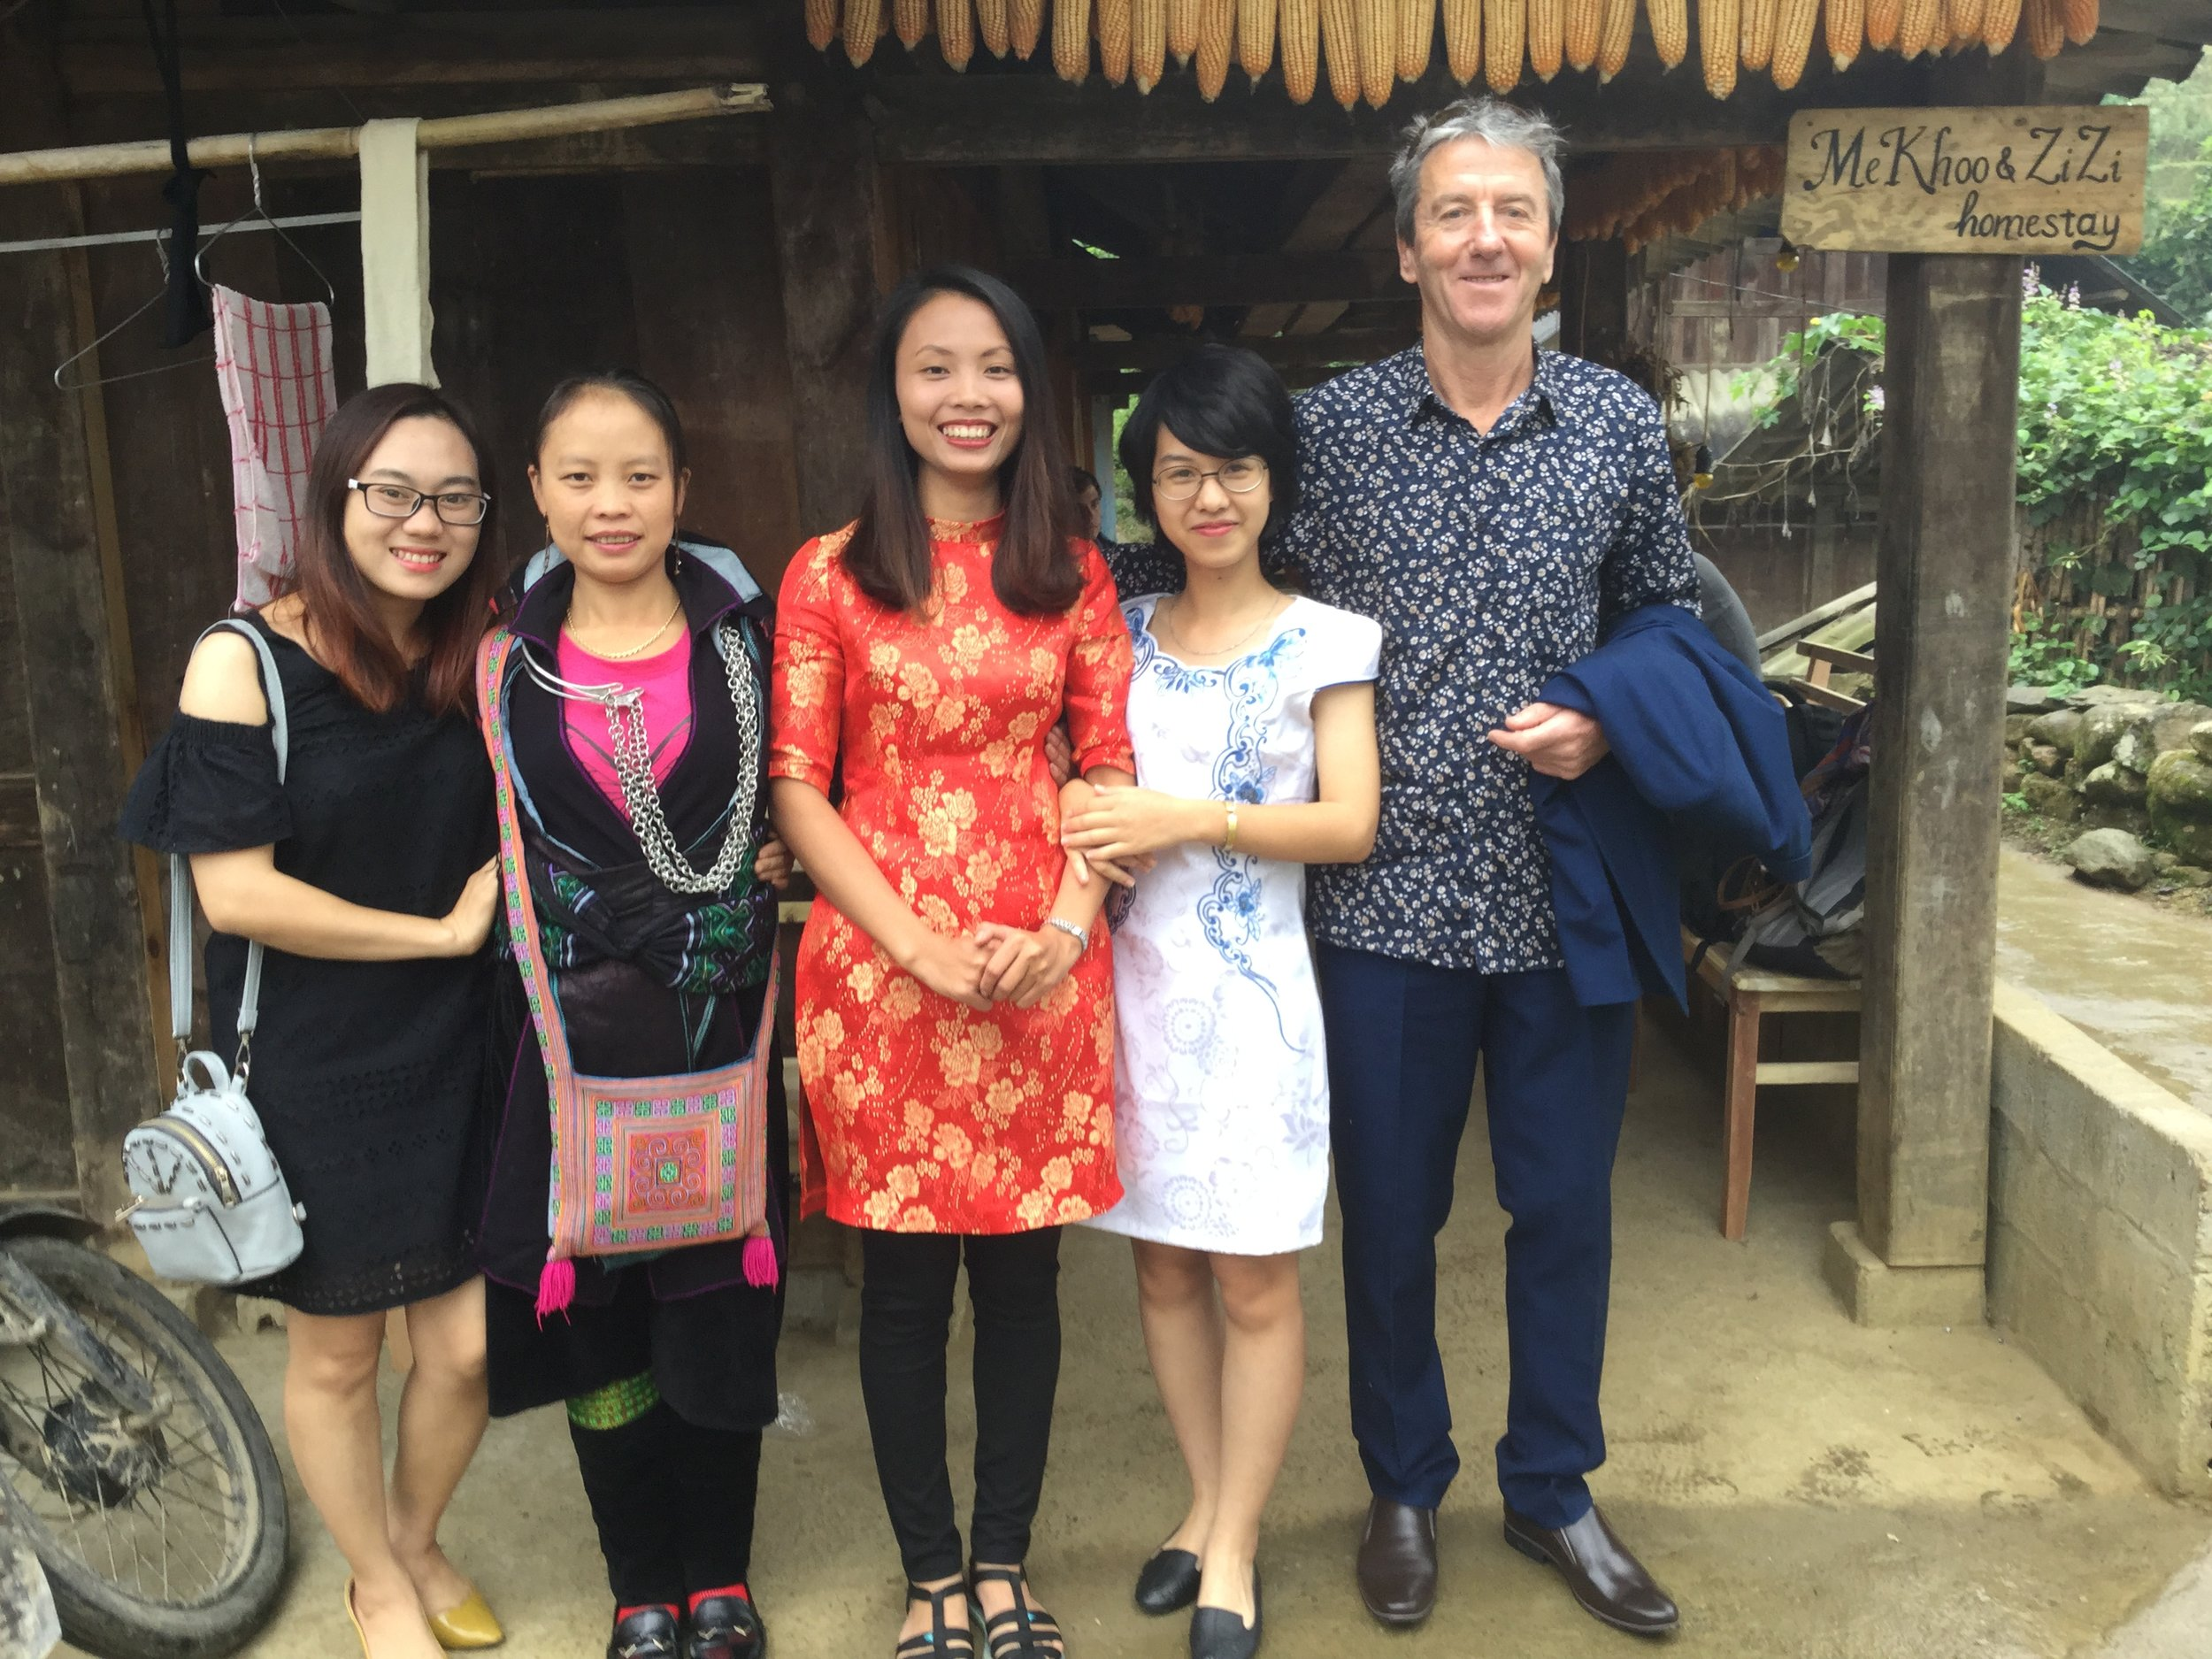 Maria in the red dress - this was the proud homestead representation to the Lao Cai wedding (Sue, Zizi, Maria, Tracy, and Tony from NZ).